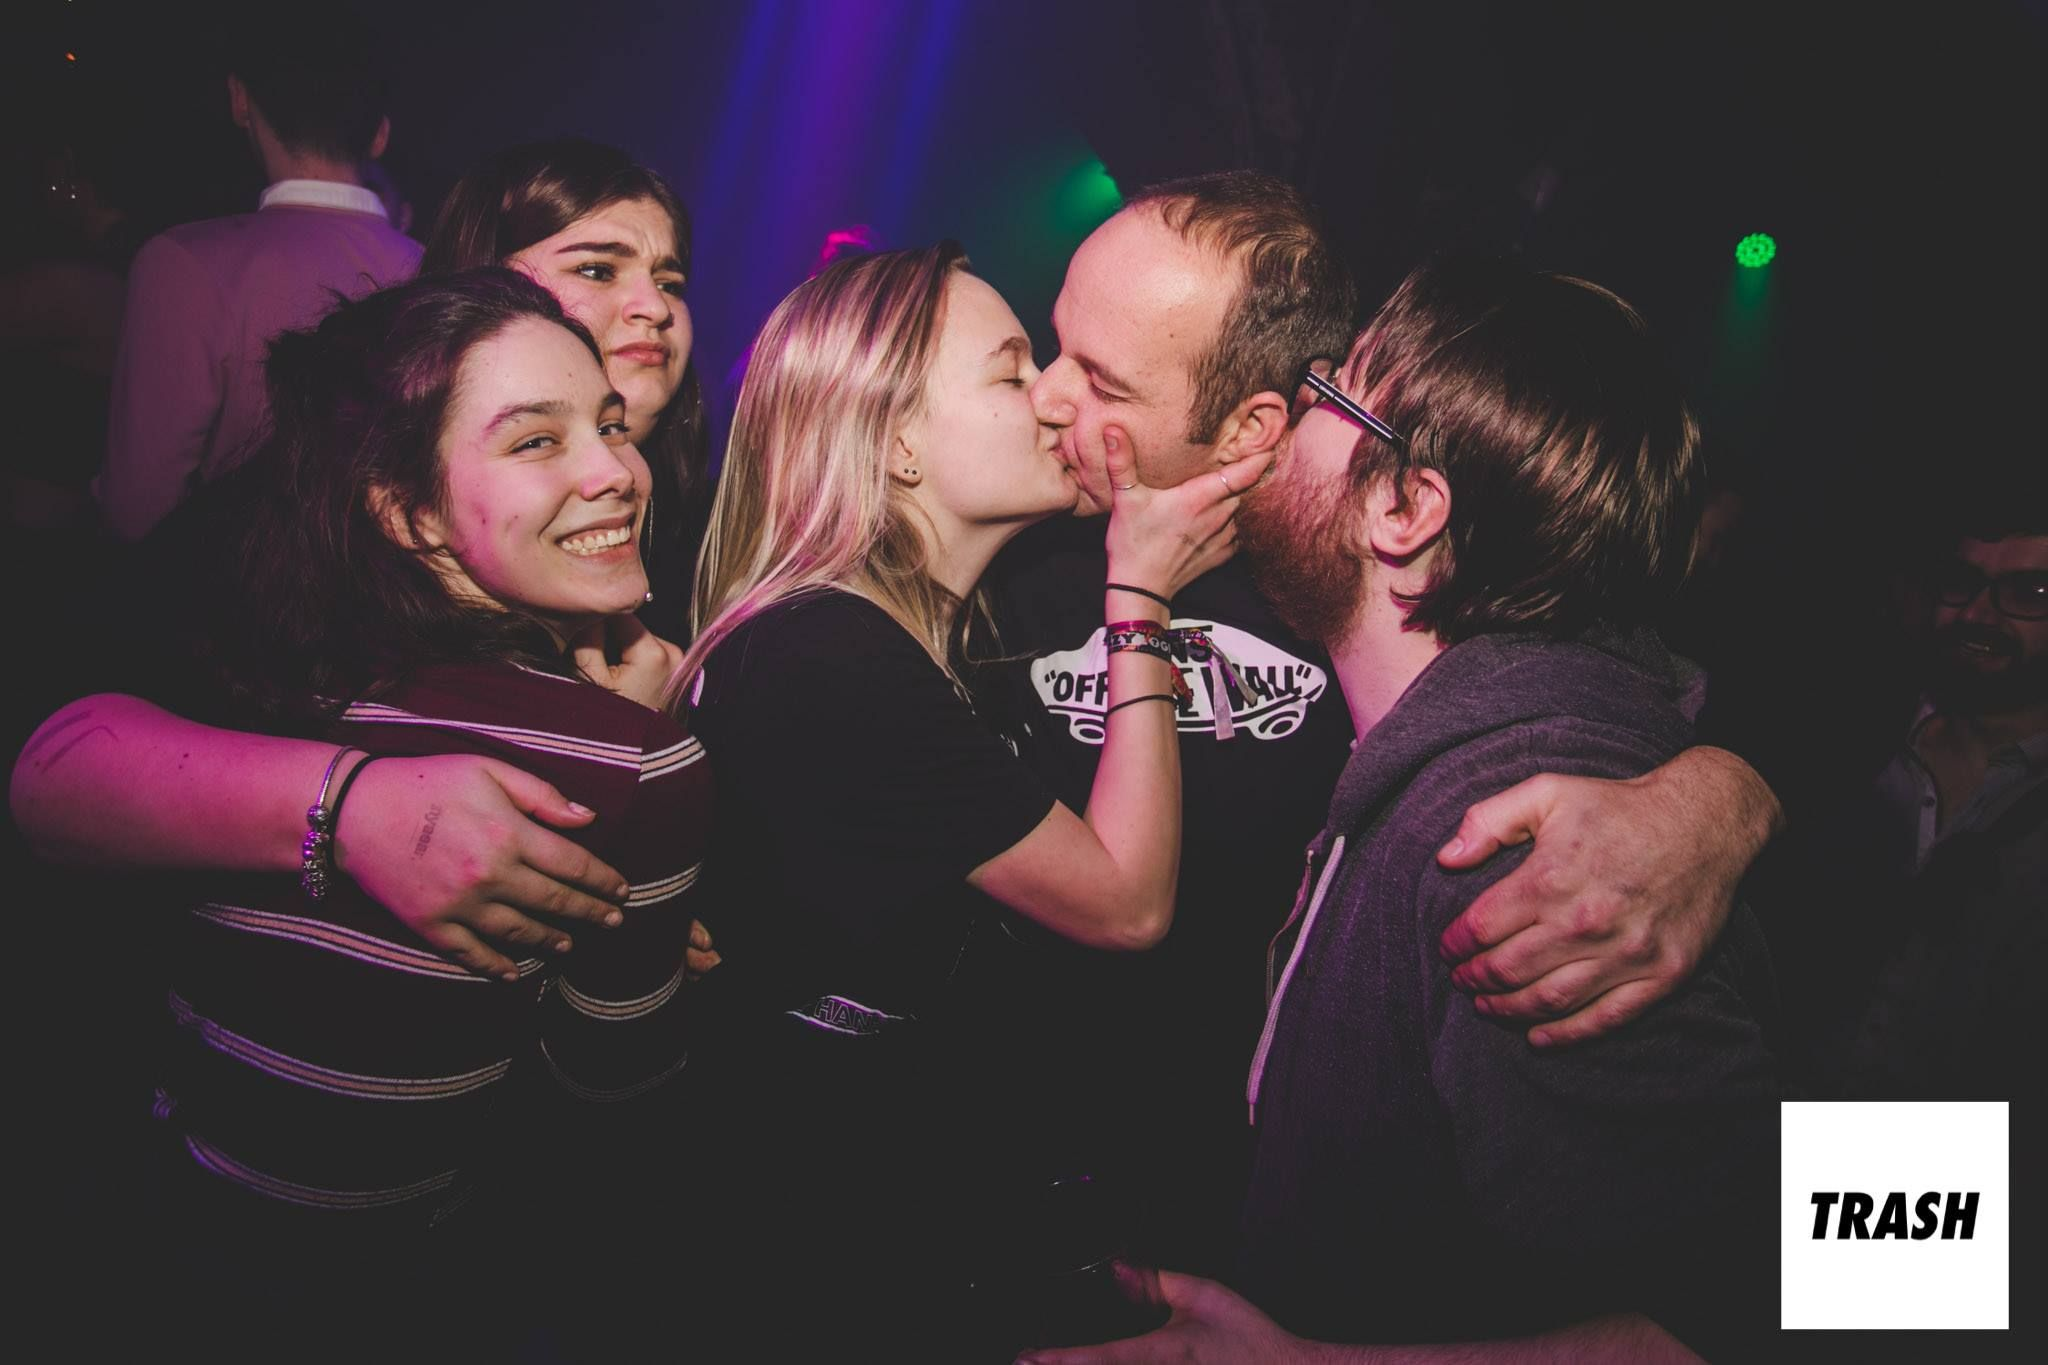 Image may contain: Make Out, Night Life, Night Club, Party, Club, Person, Human